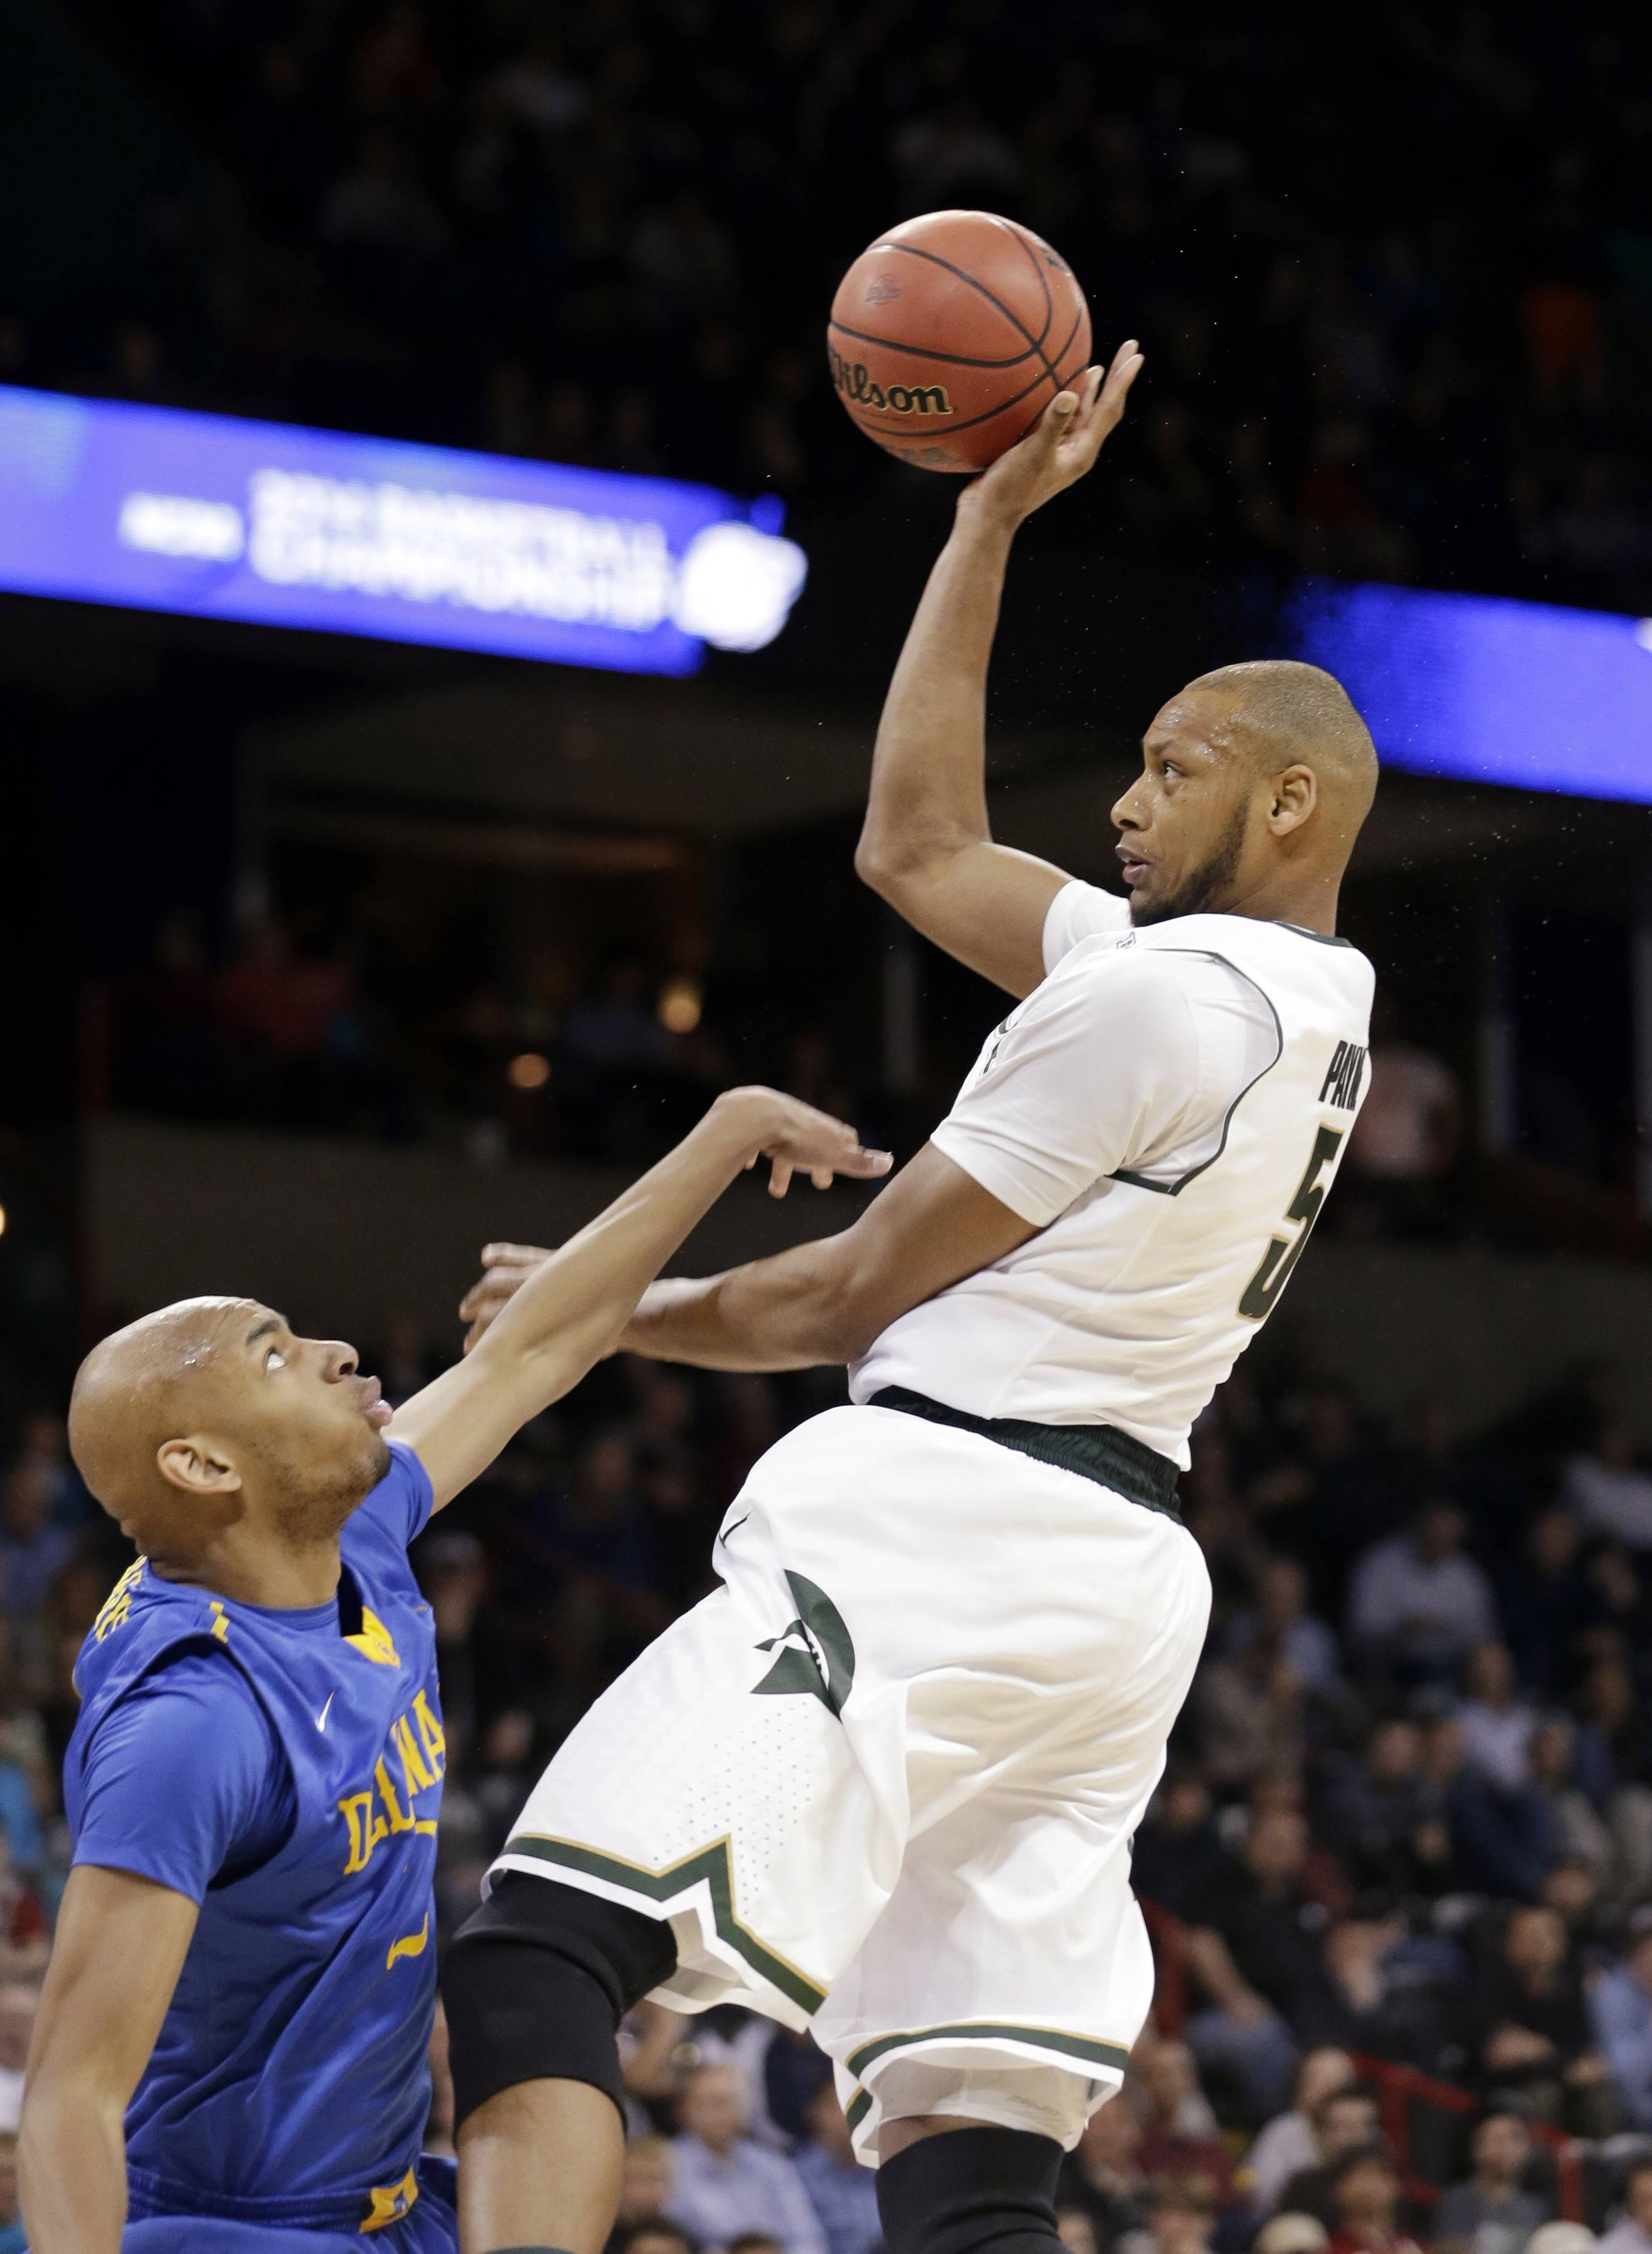 Michigan State's Adreian Payne, right, shoots over Delaware's Barnett Harris in the second half during the second round of the NCAA college basketball tournament in Spokane, Wash., Thursday, March 20, 2014. Michigan State won 93-78. (AP Photo/Elaine Thompson)